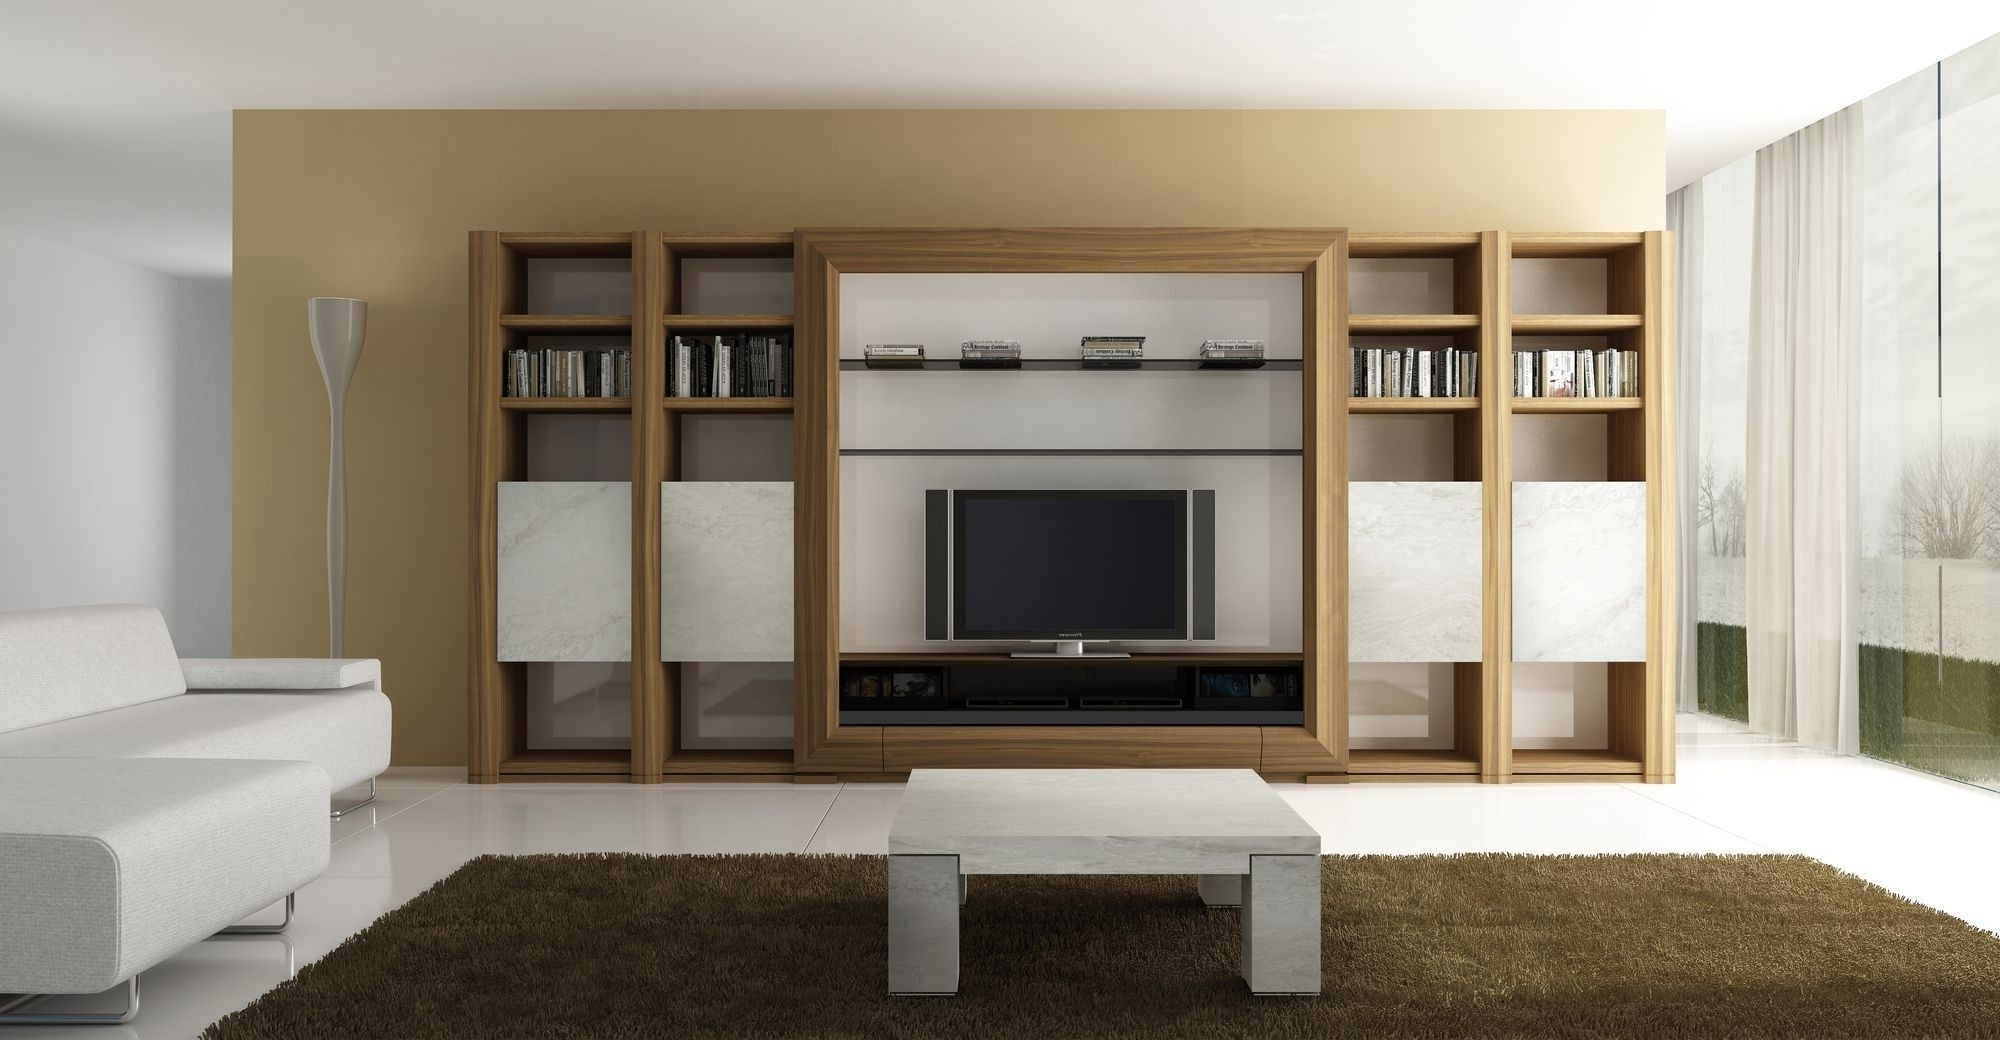 Current Wall Units For Living Room Regarding Wall Units, Amusing Full Wall Storage Unit Living Room Living Room (View 11 of 15)